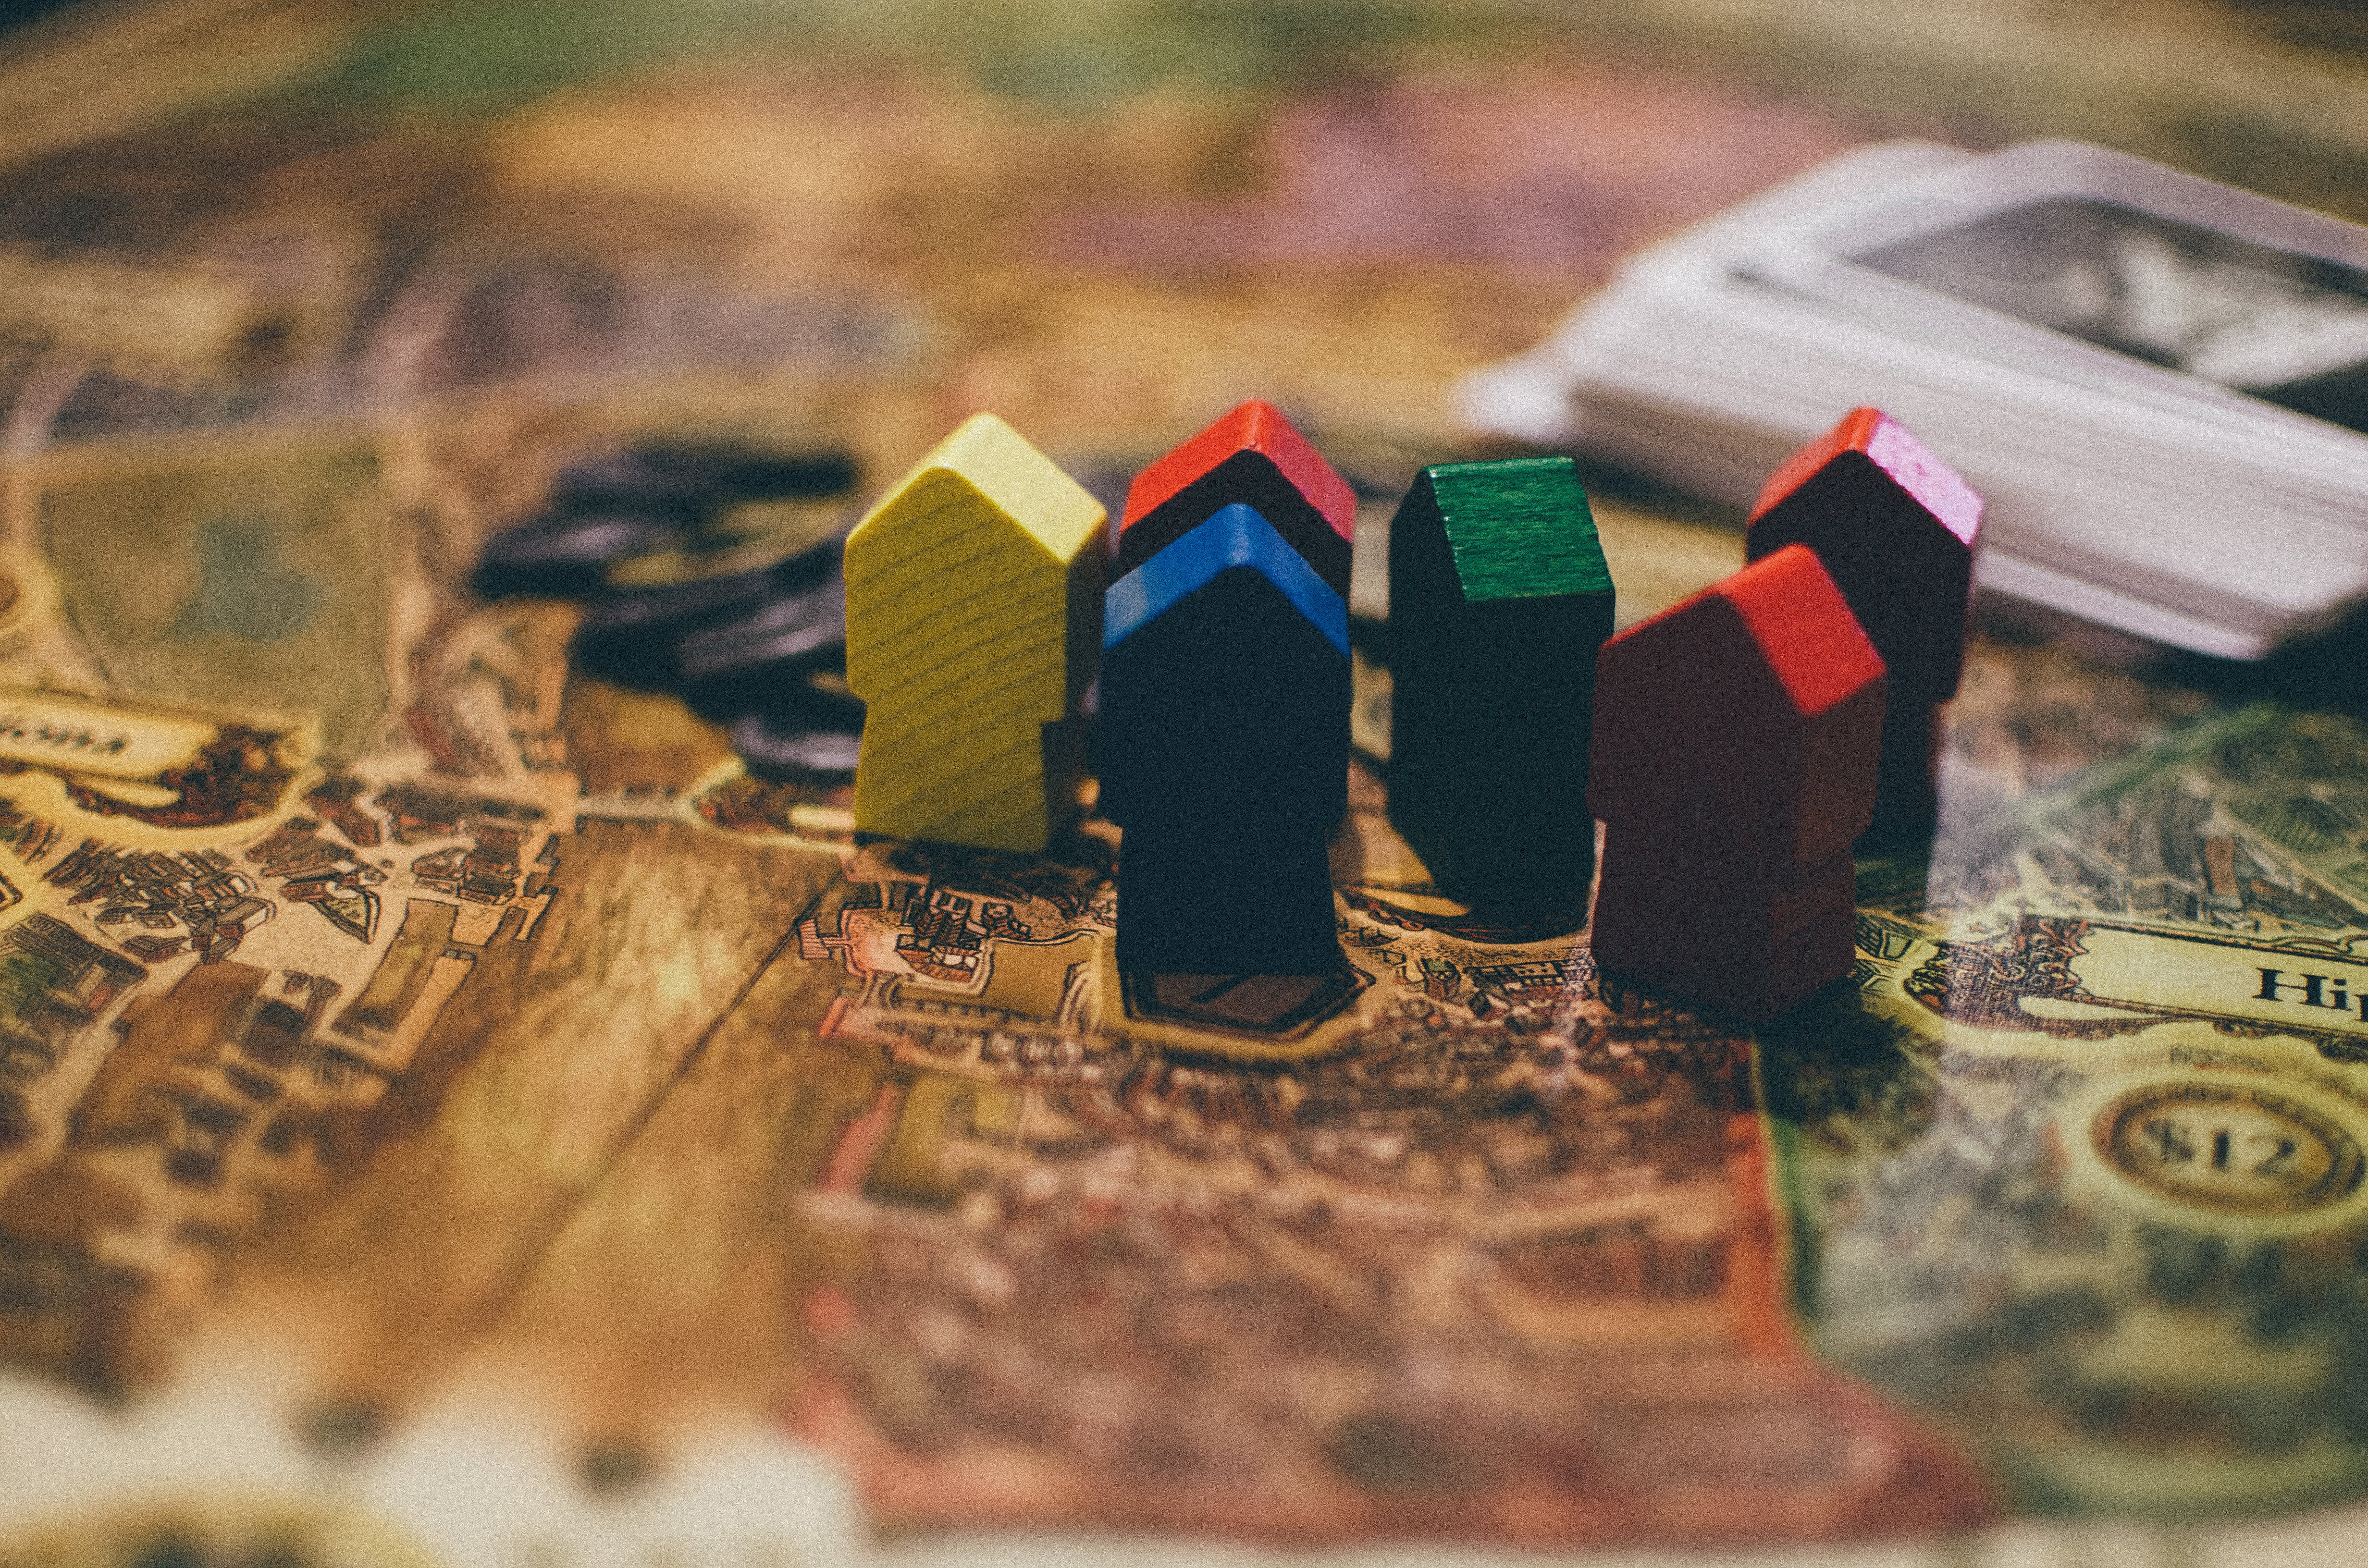 Free stock photo of wood, blur, game, color